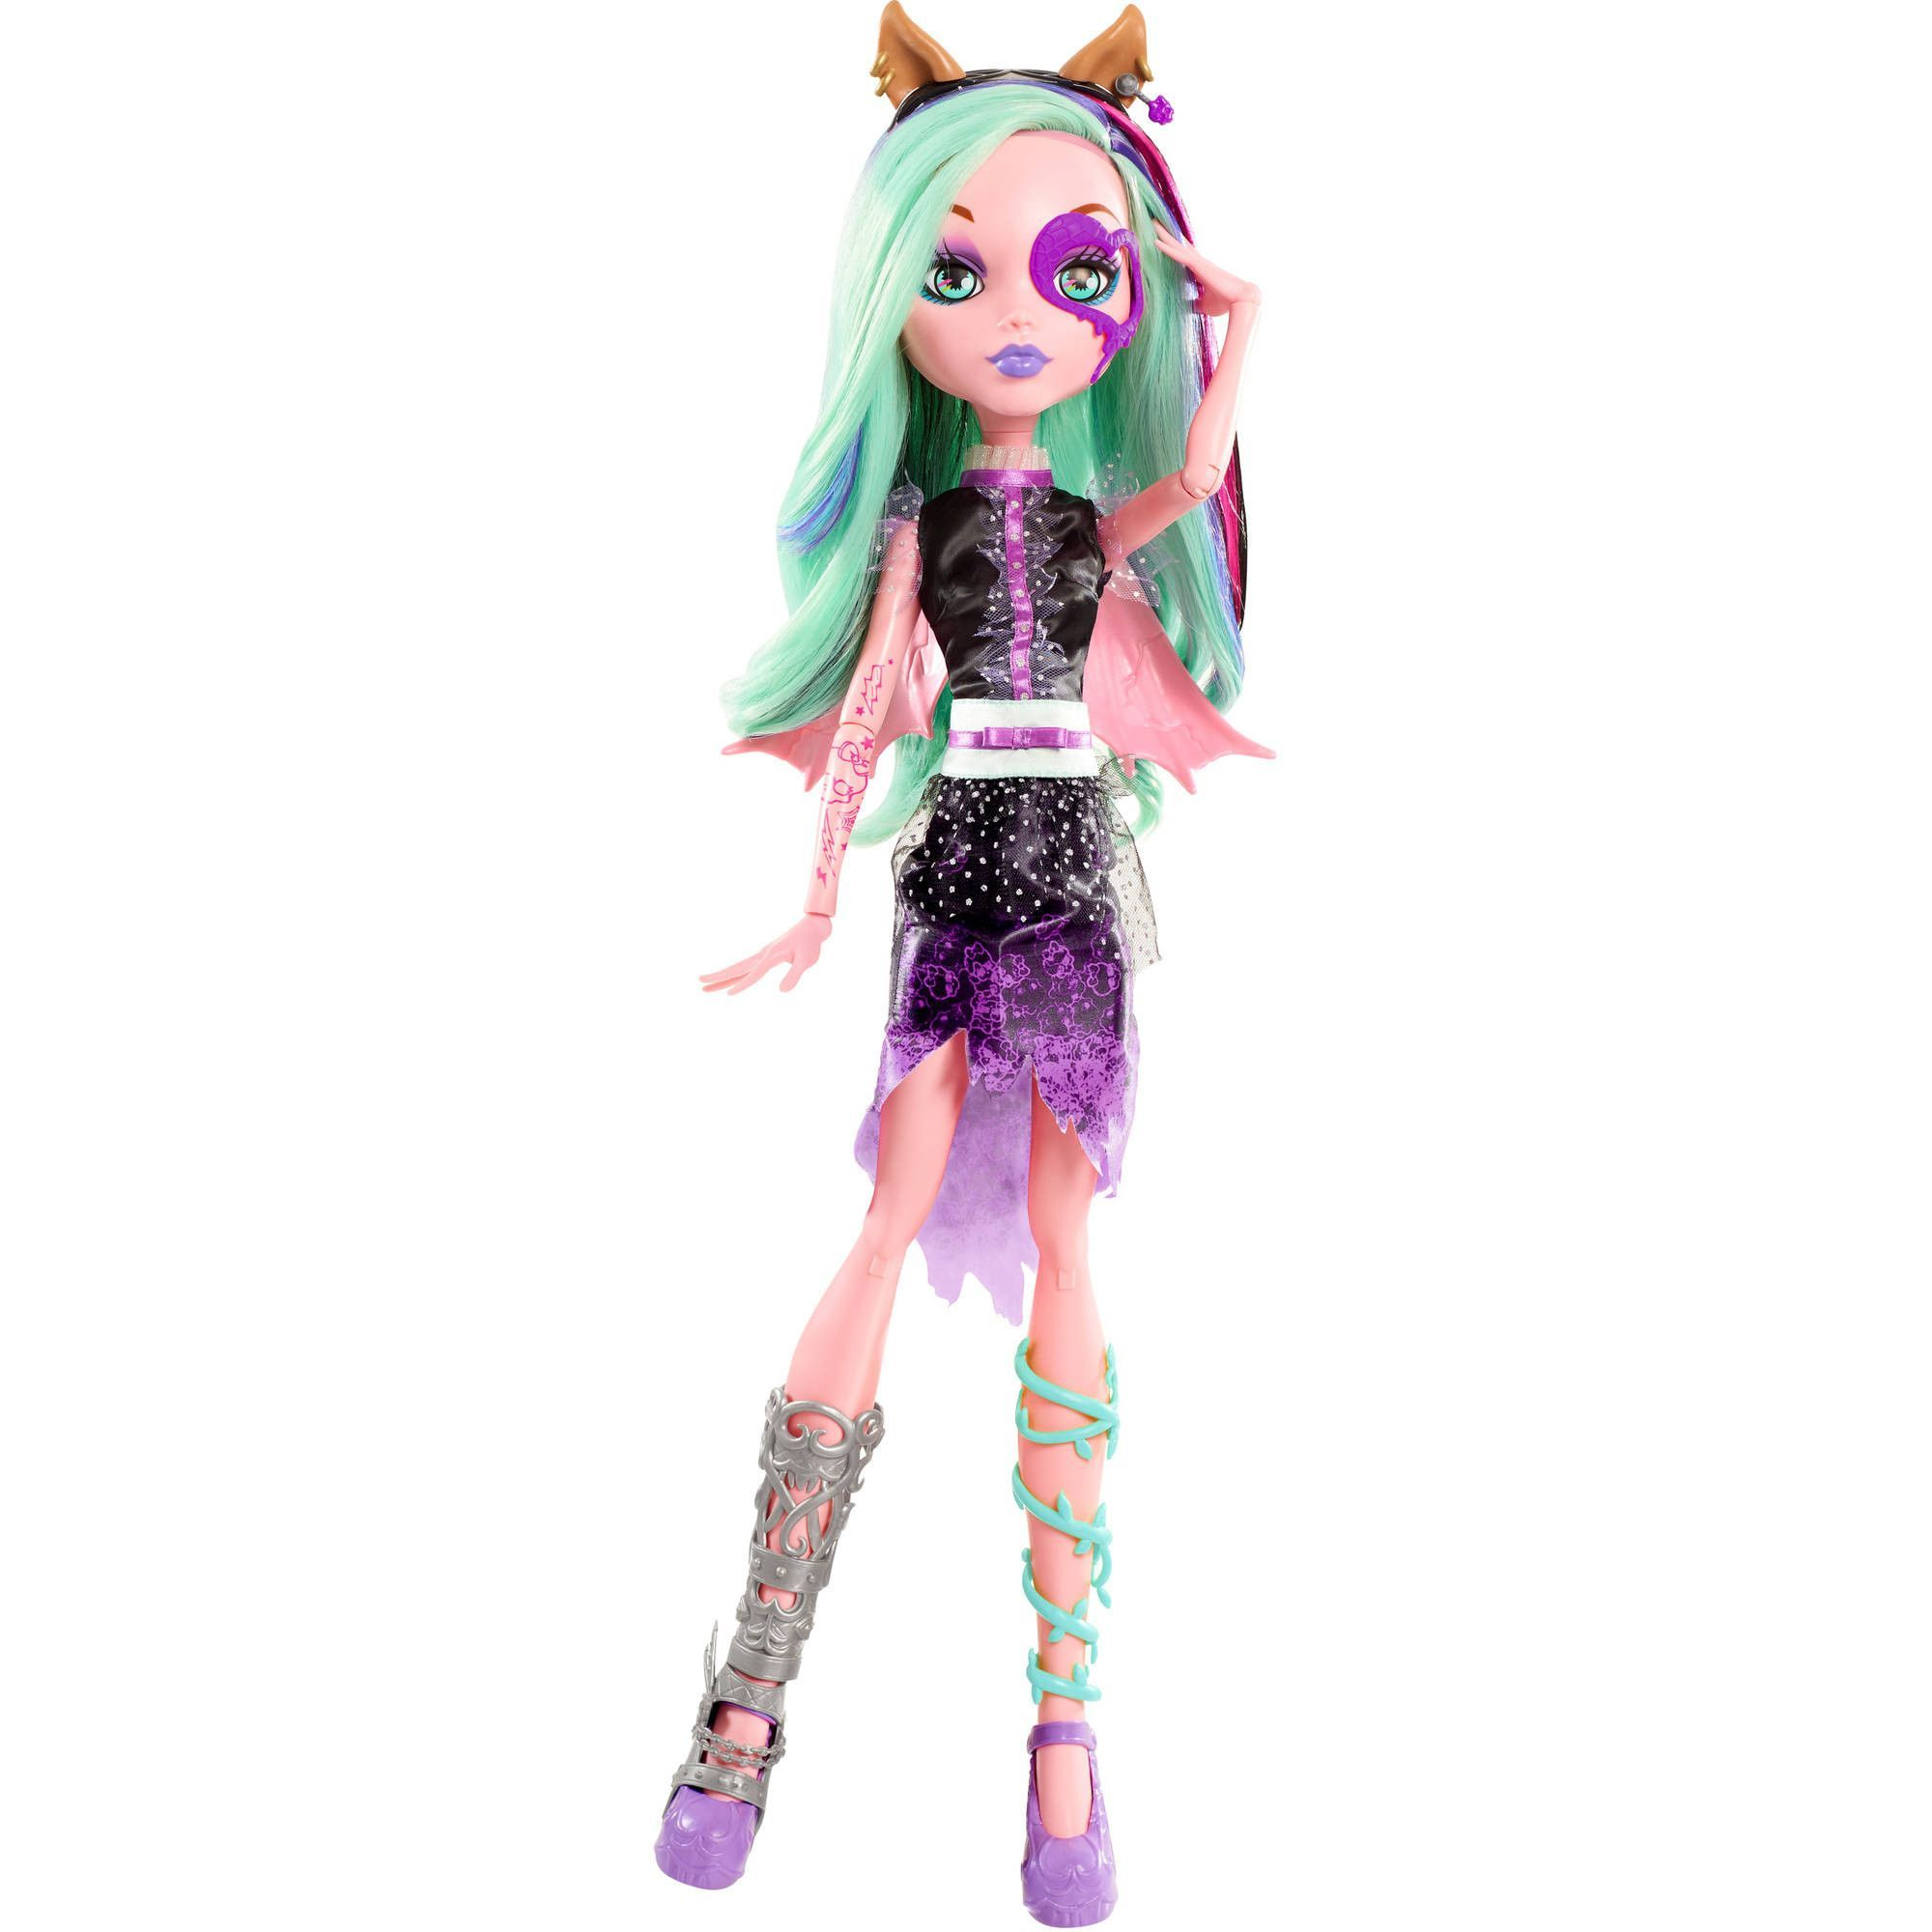 """Enjoy some spooky fun with this Monster High 28"""" Voltageous Ghoul Friend (Exclusive). She's always got her eye on the newest trends, so watch her transform her look and eye color with just a wink. The"""